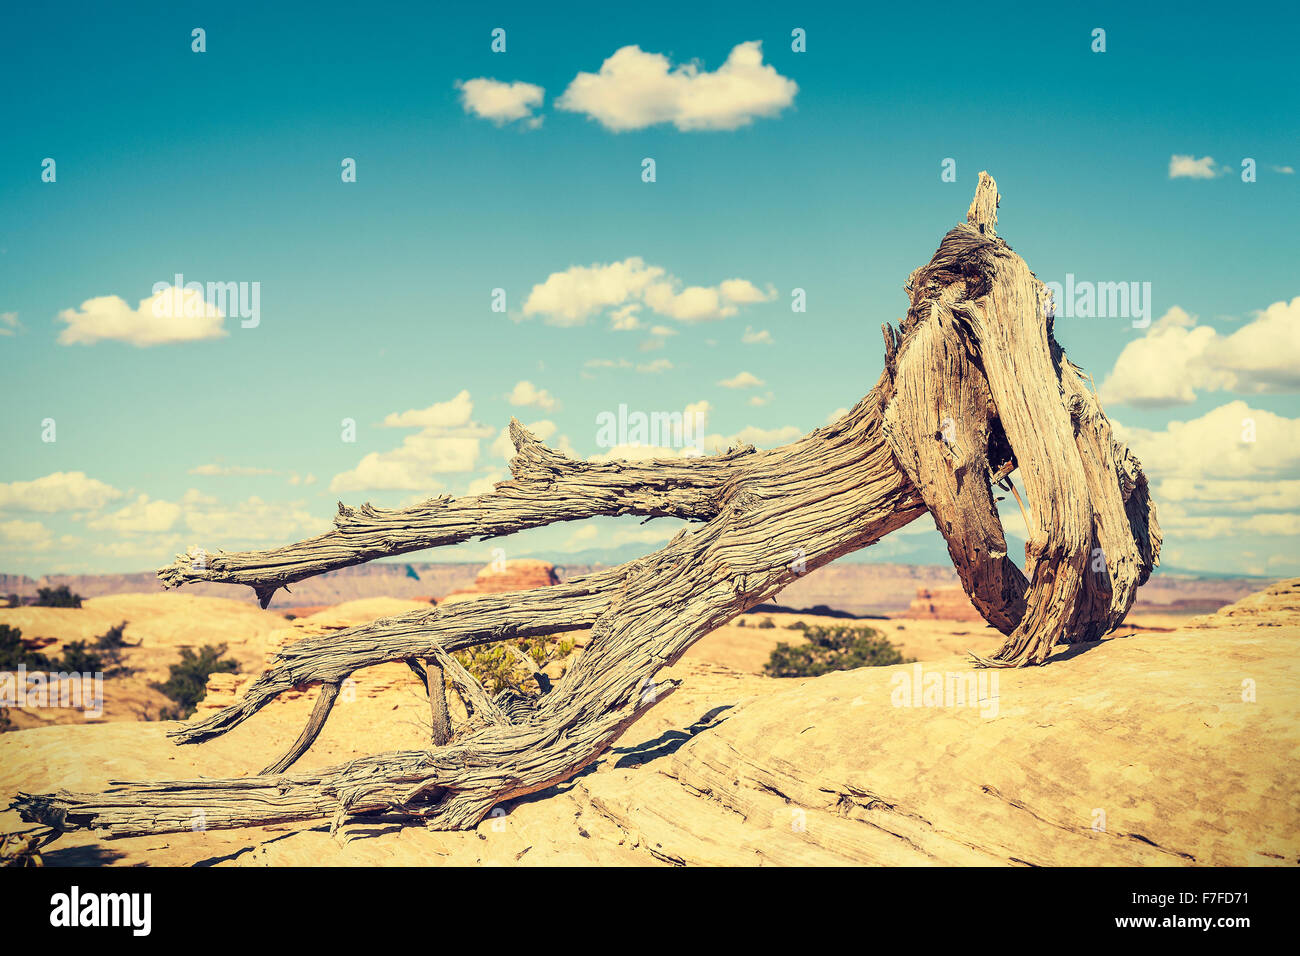 Retro toned dead tree, climate change concept picture. - Stock Image